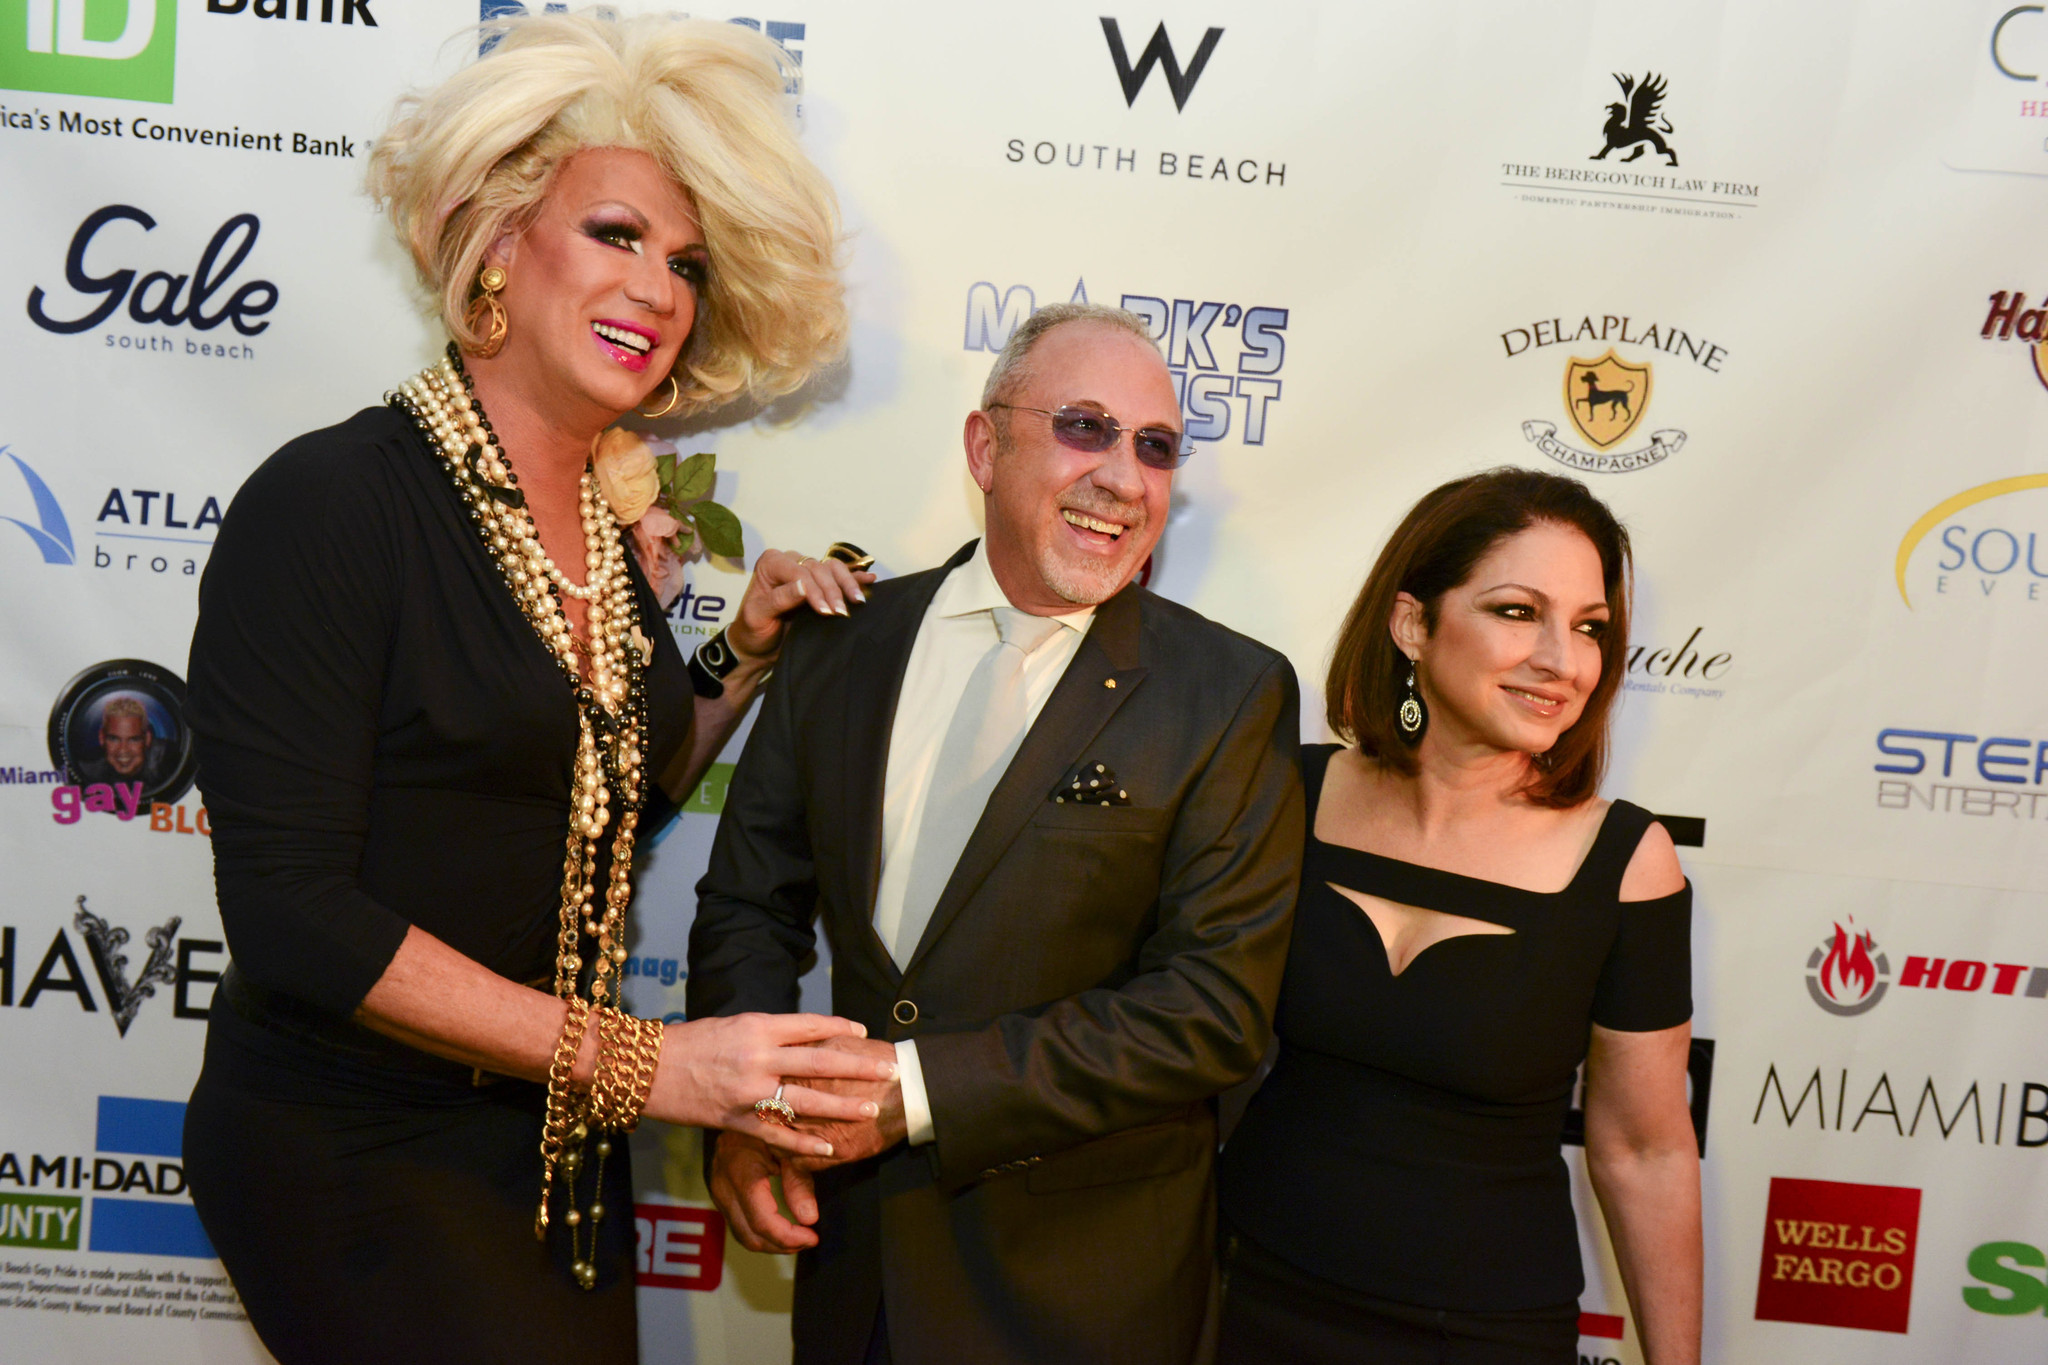 Celeb-spotting around South Florida - Drag diva Elaine Lancaster with Emilio and Gloria Estefan